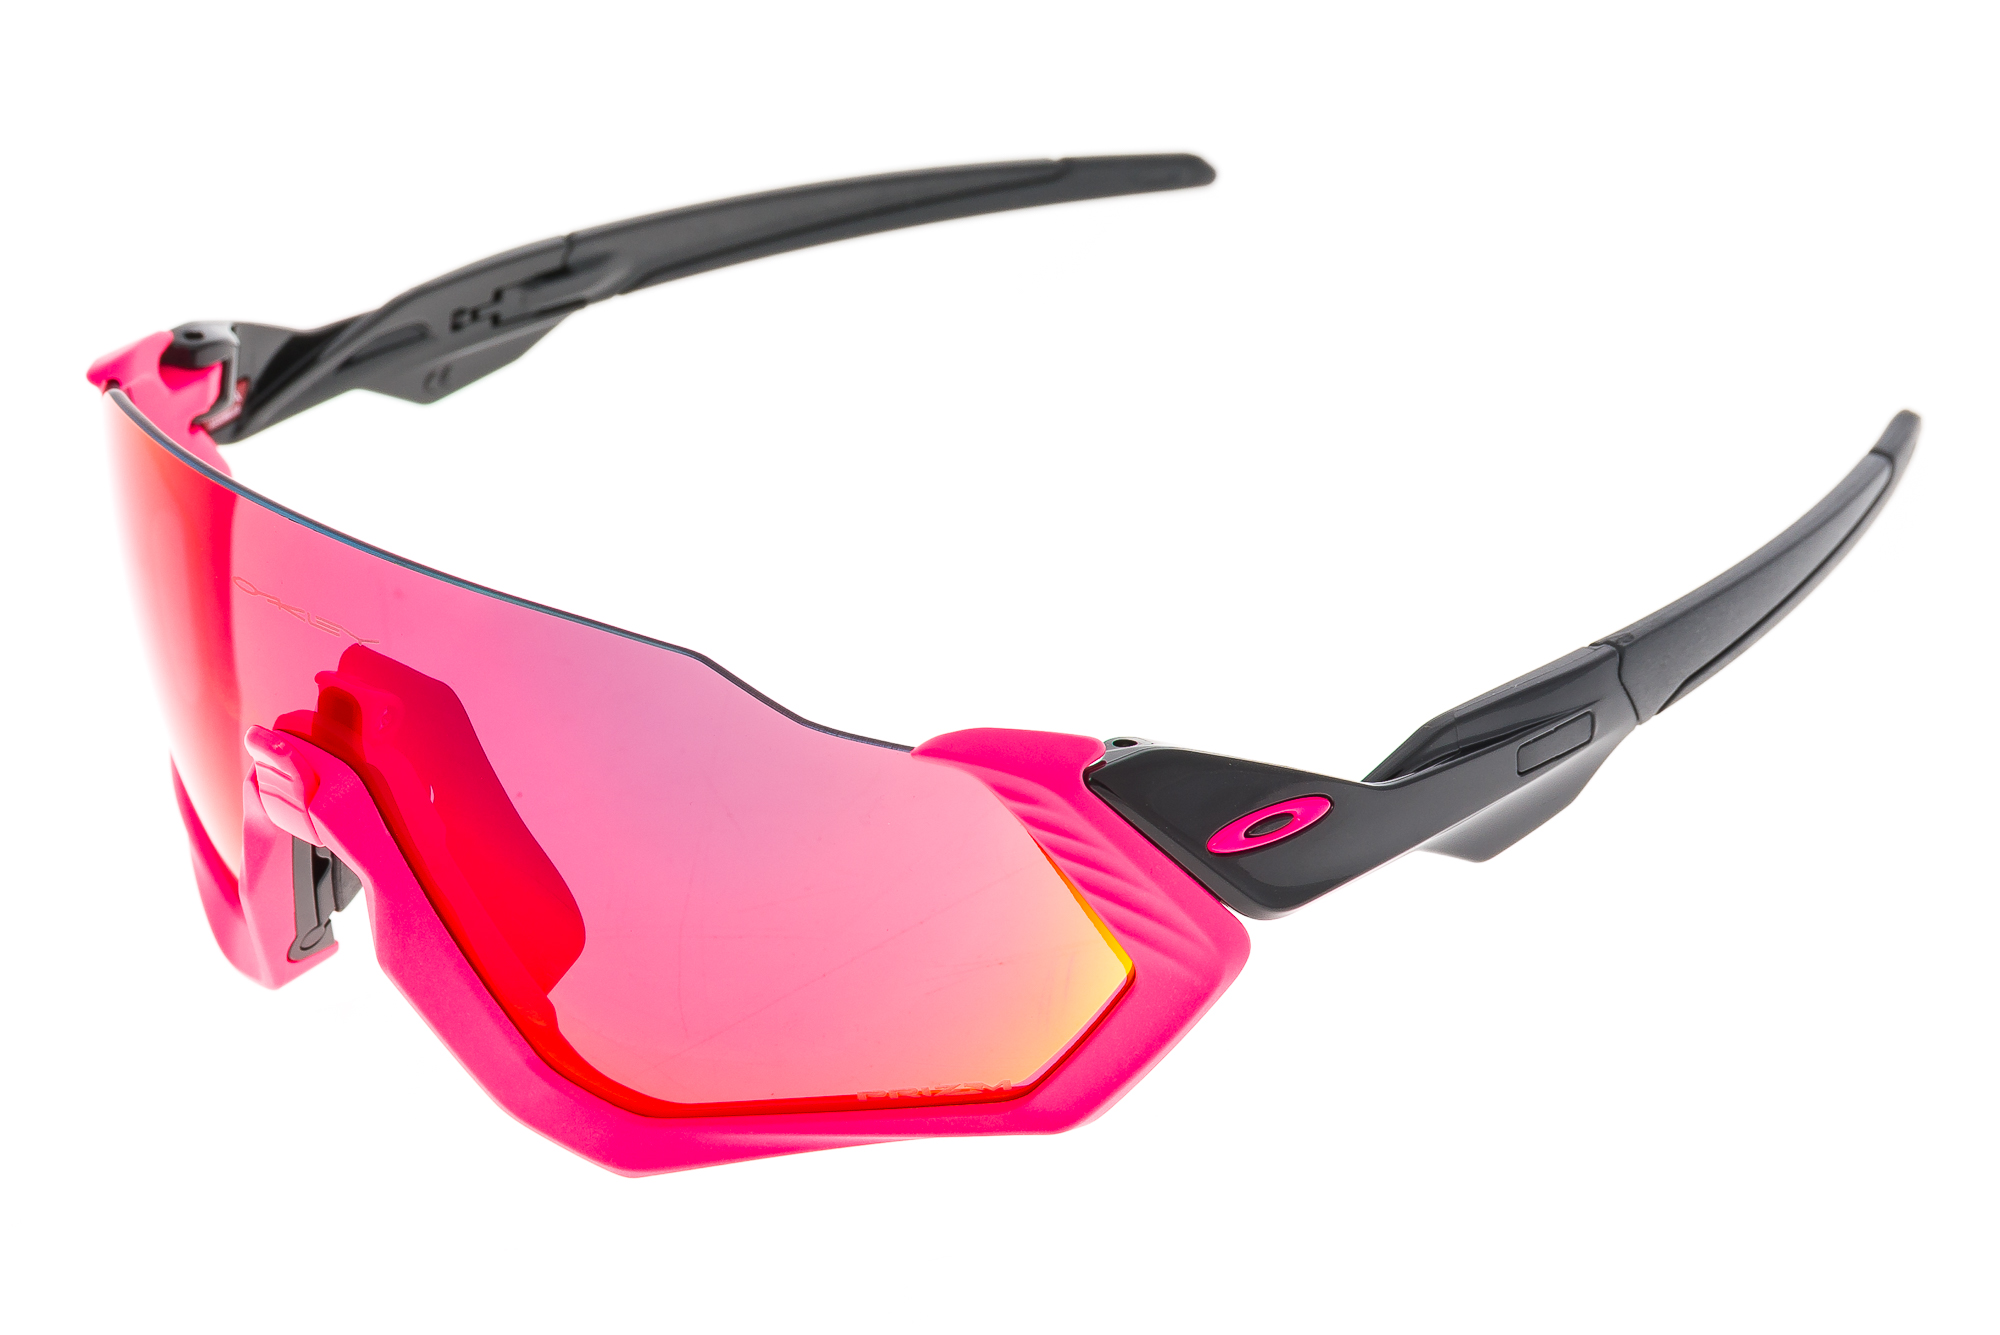 480a5042d0 Details about Oakley Flight Jacket Neon Pink Prizm Road